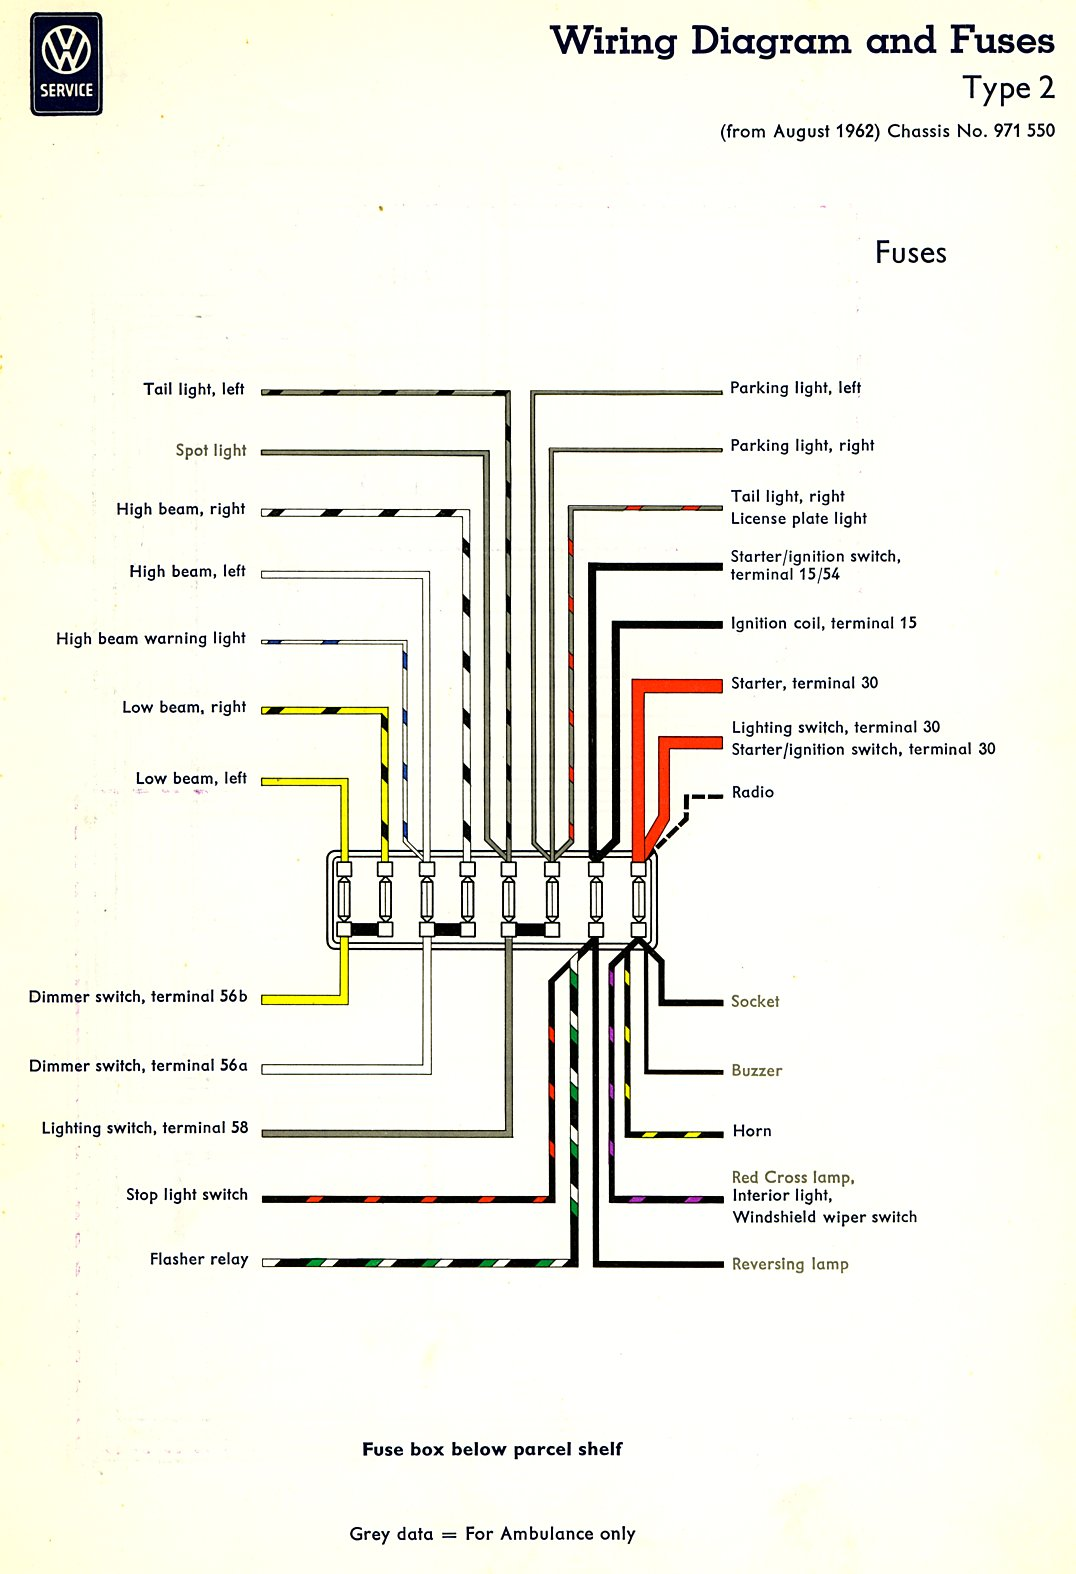 1970 VWBug Wiring Diagram http://thegoldenbug.com/en/vw_technical_articles/d146/1963_bus_wiring_diagram